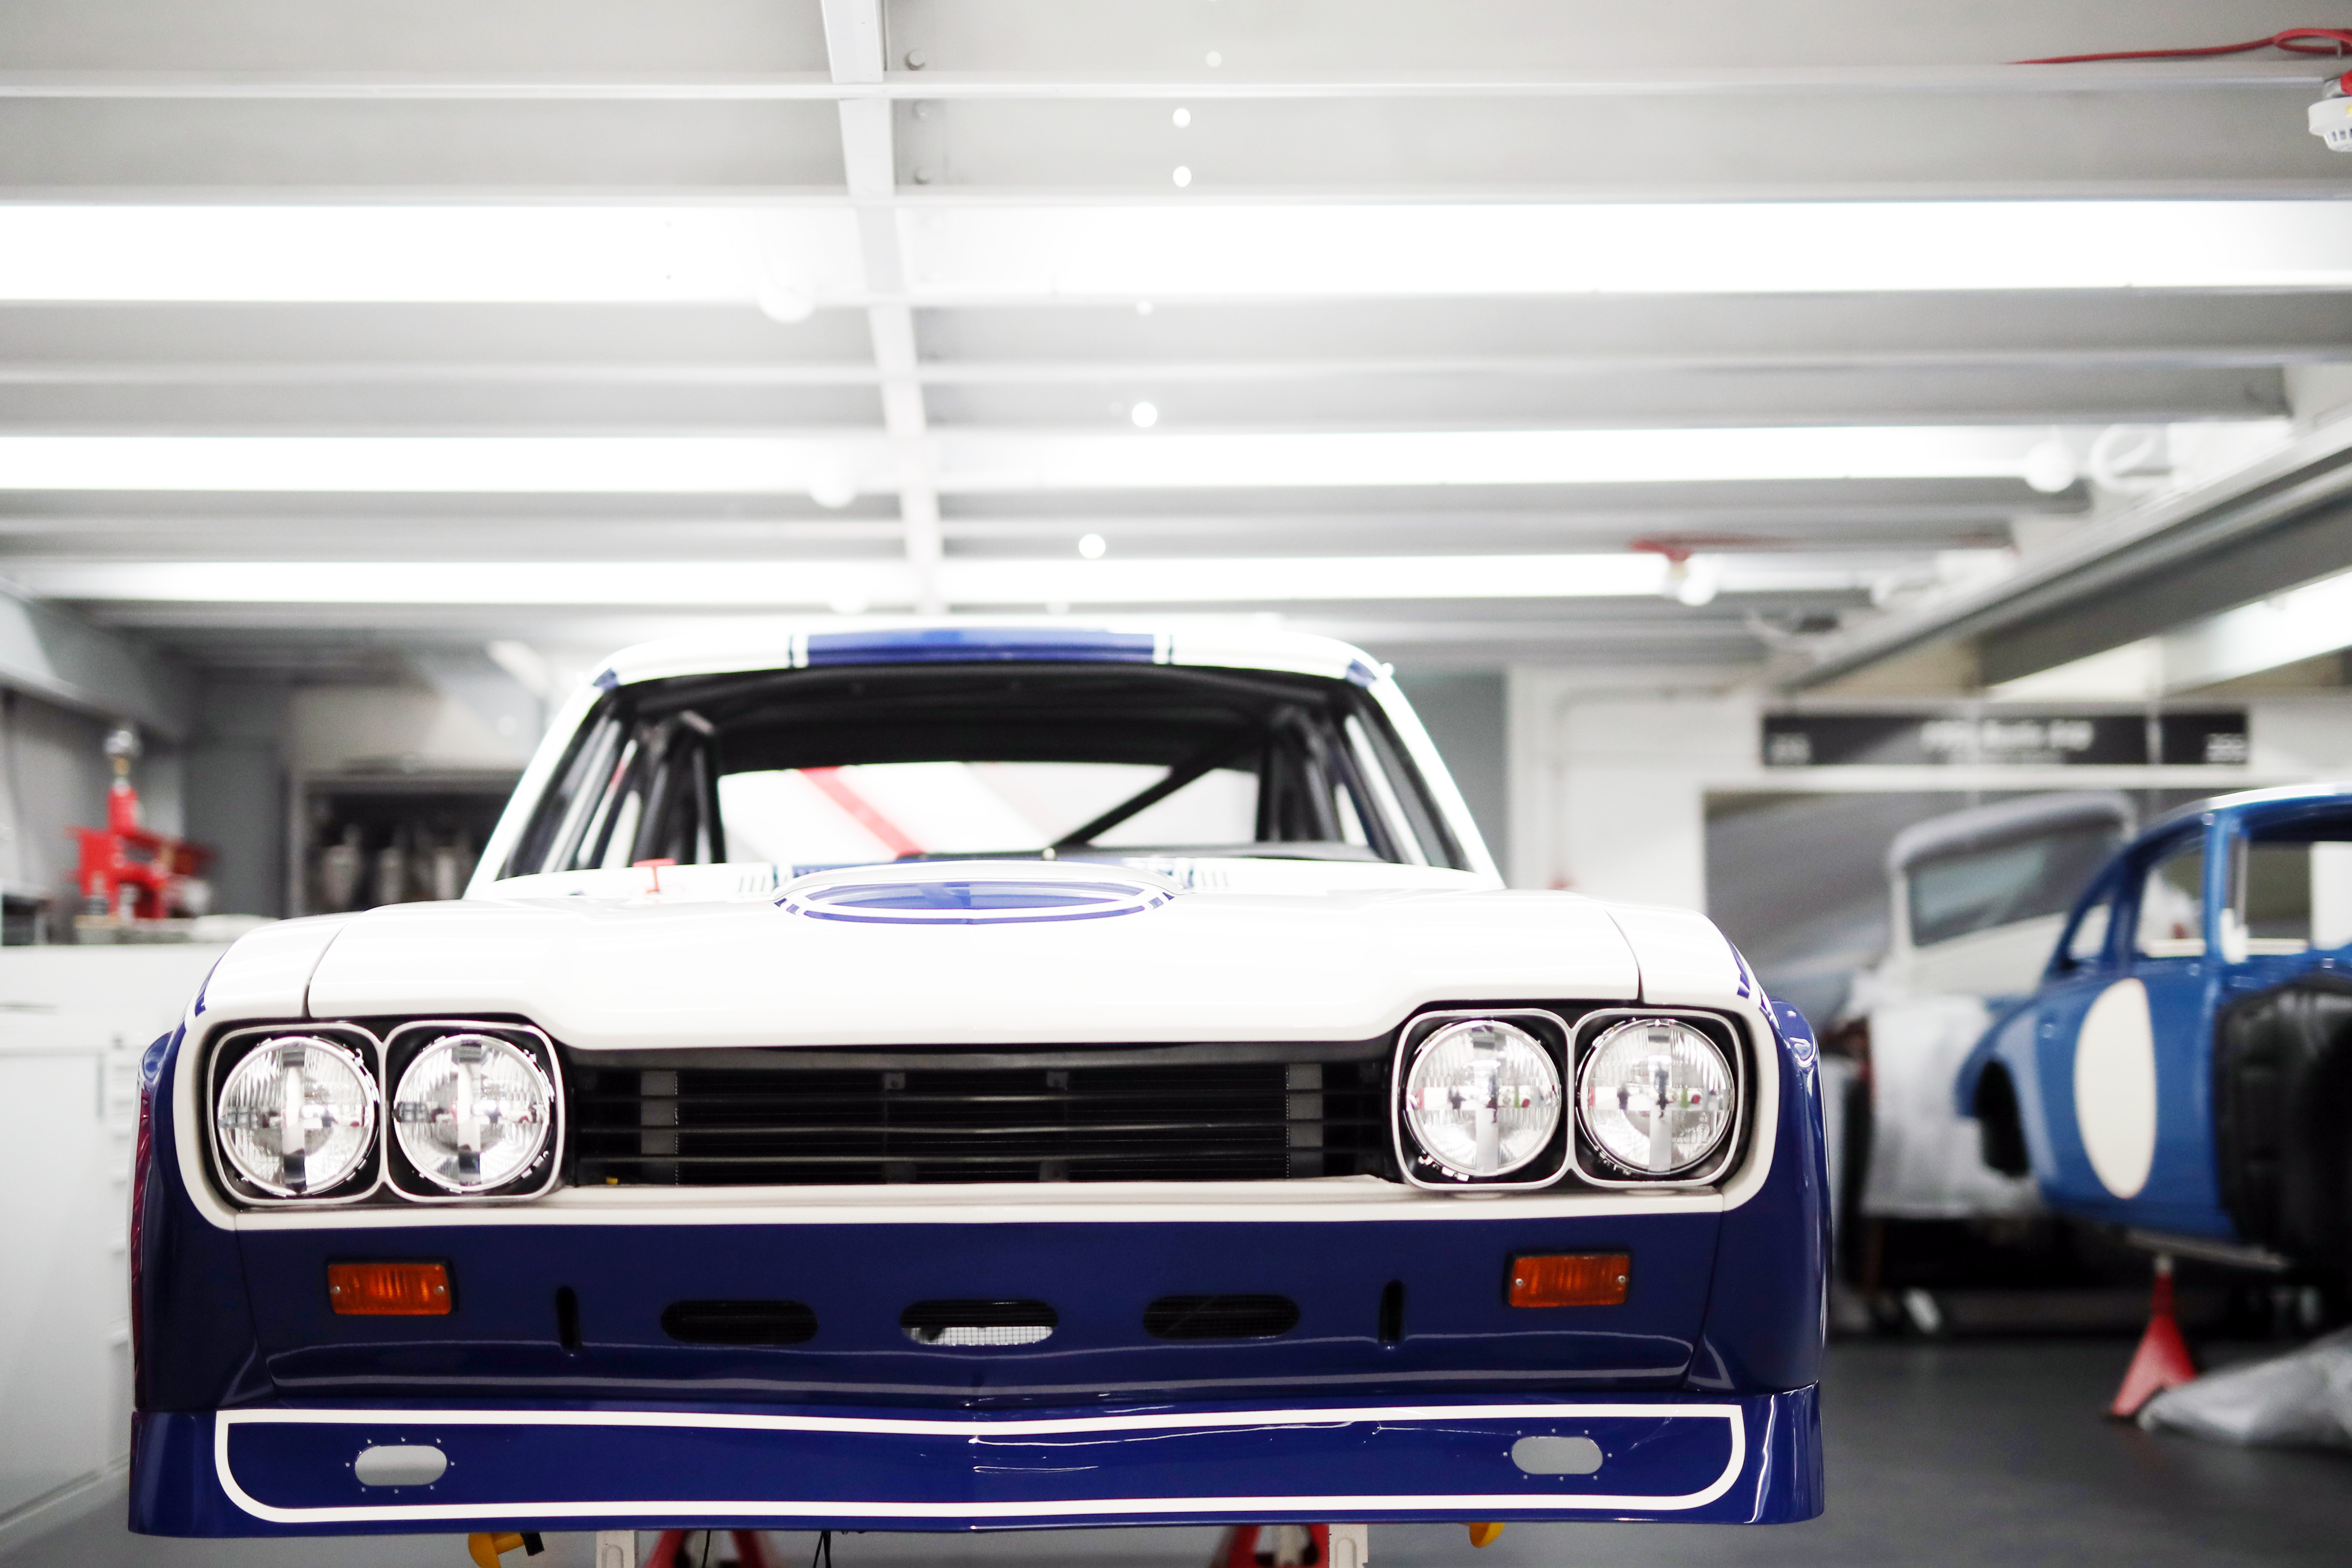 We tend to see on the market a huge rise in interest in the classic car business, what's causing this you think?